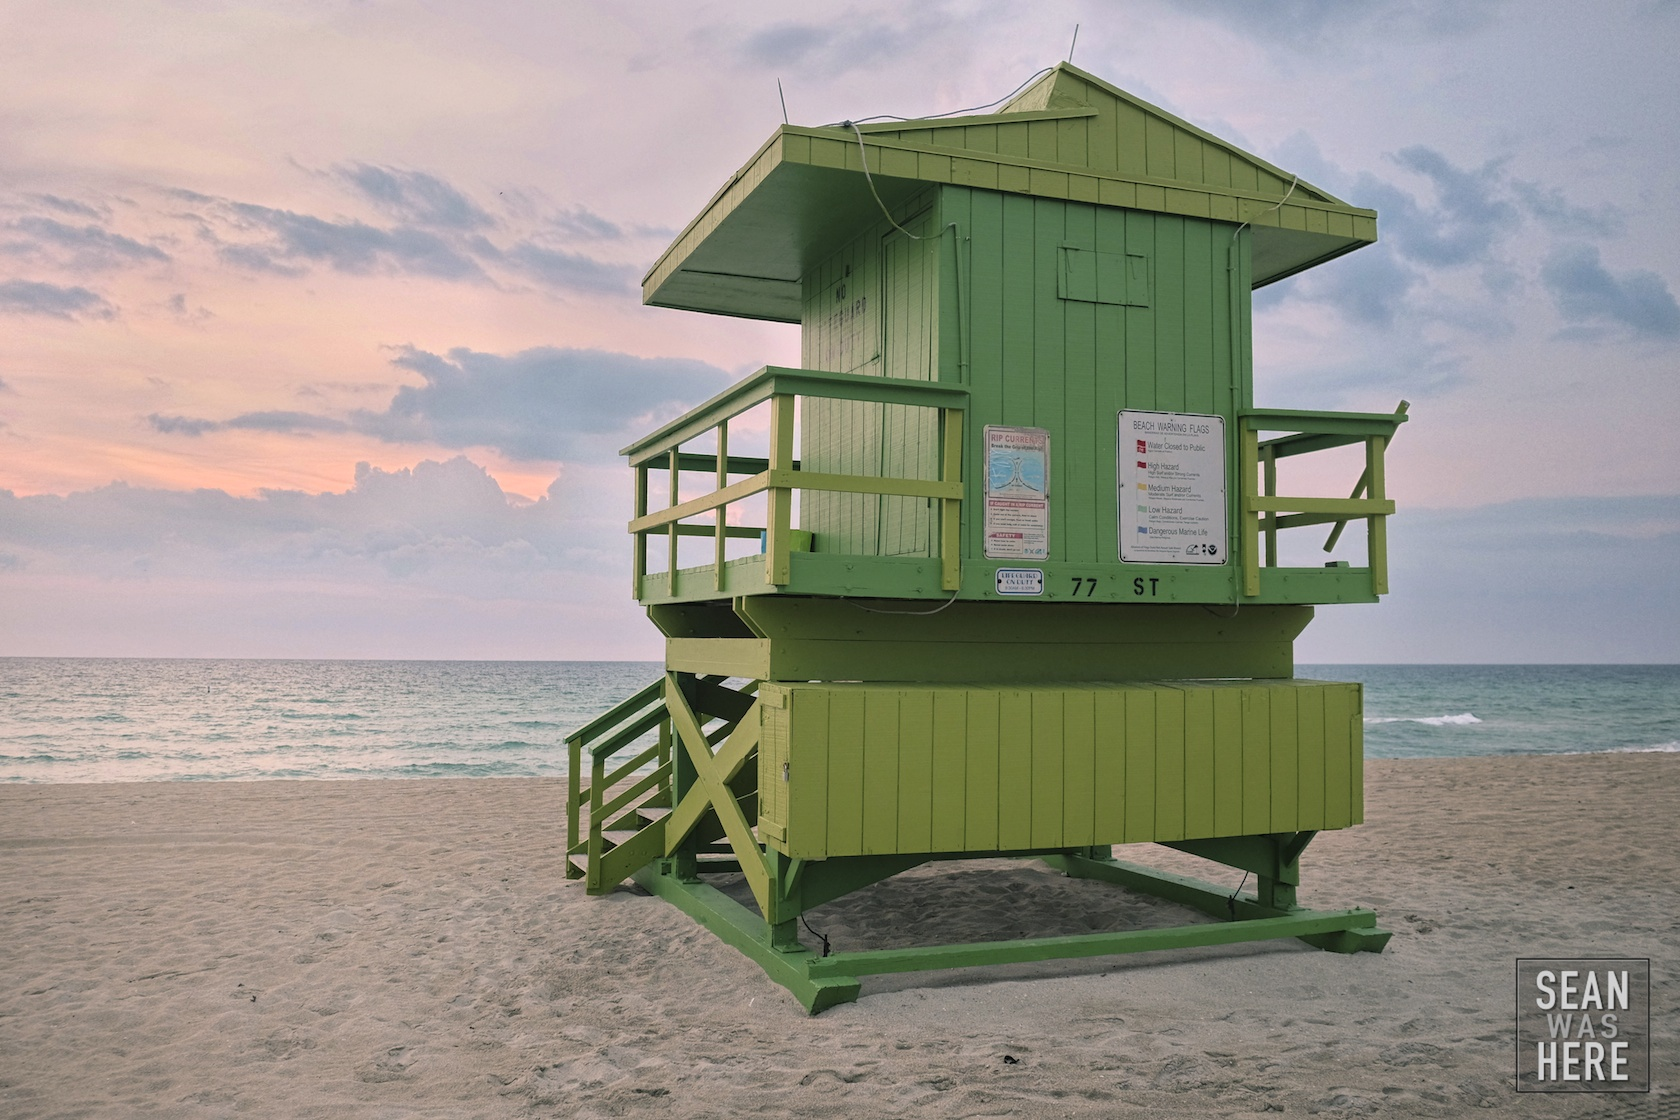 Miami Beach 77th Street Lifeguard Stand